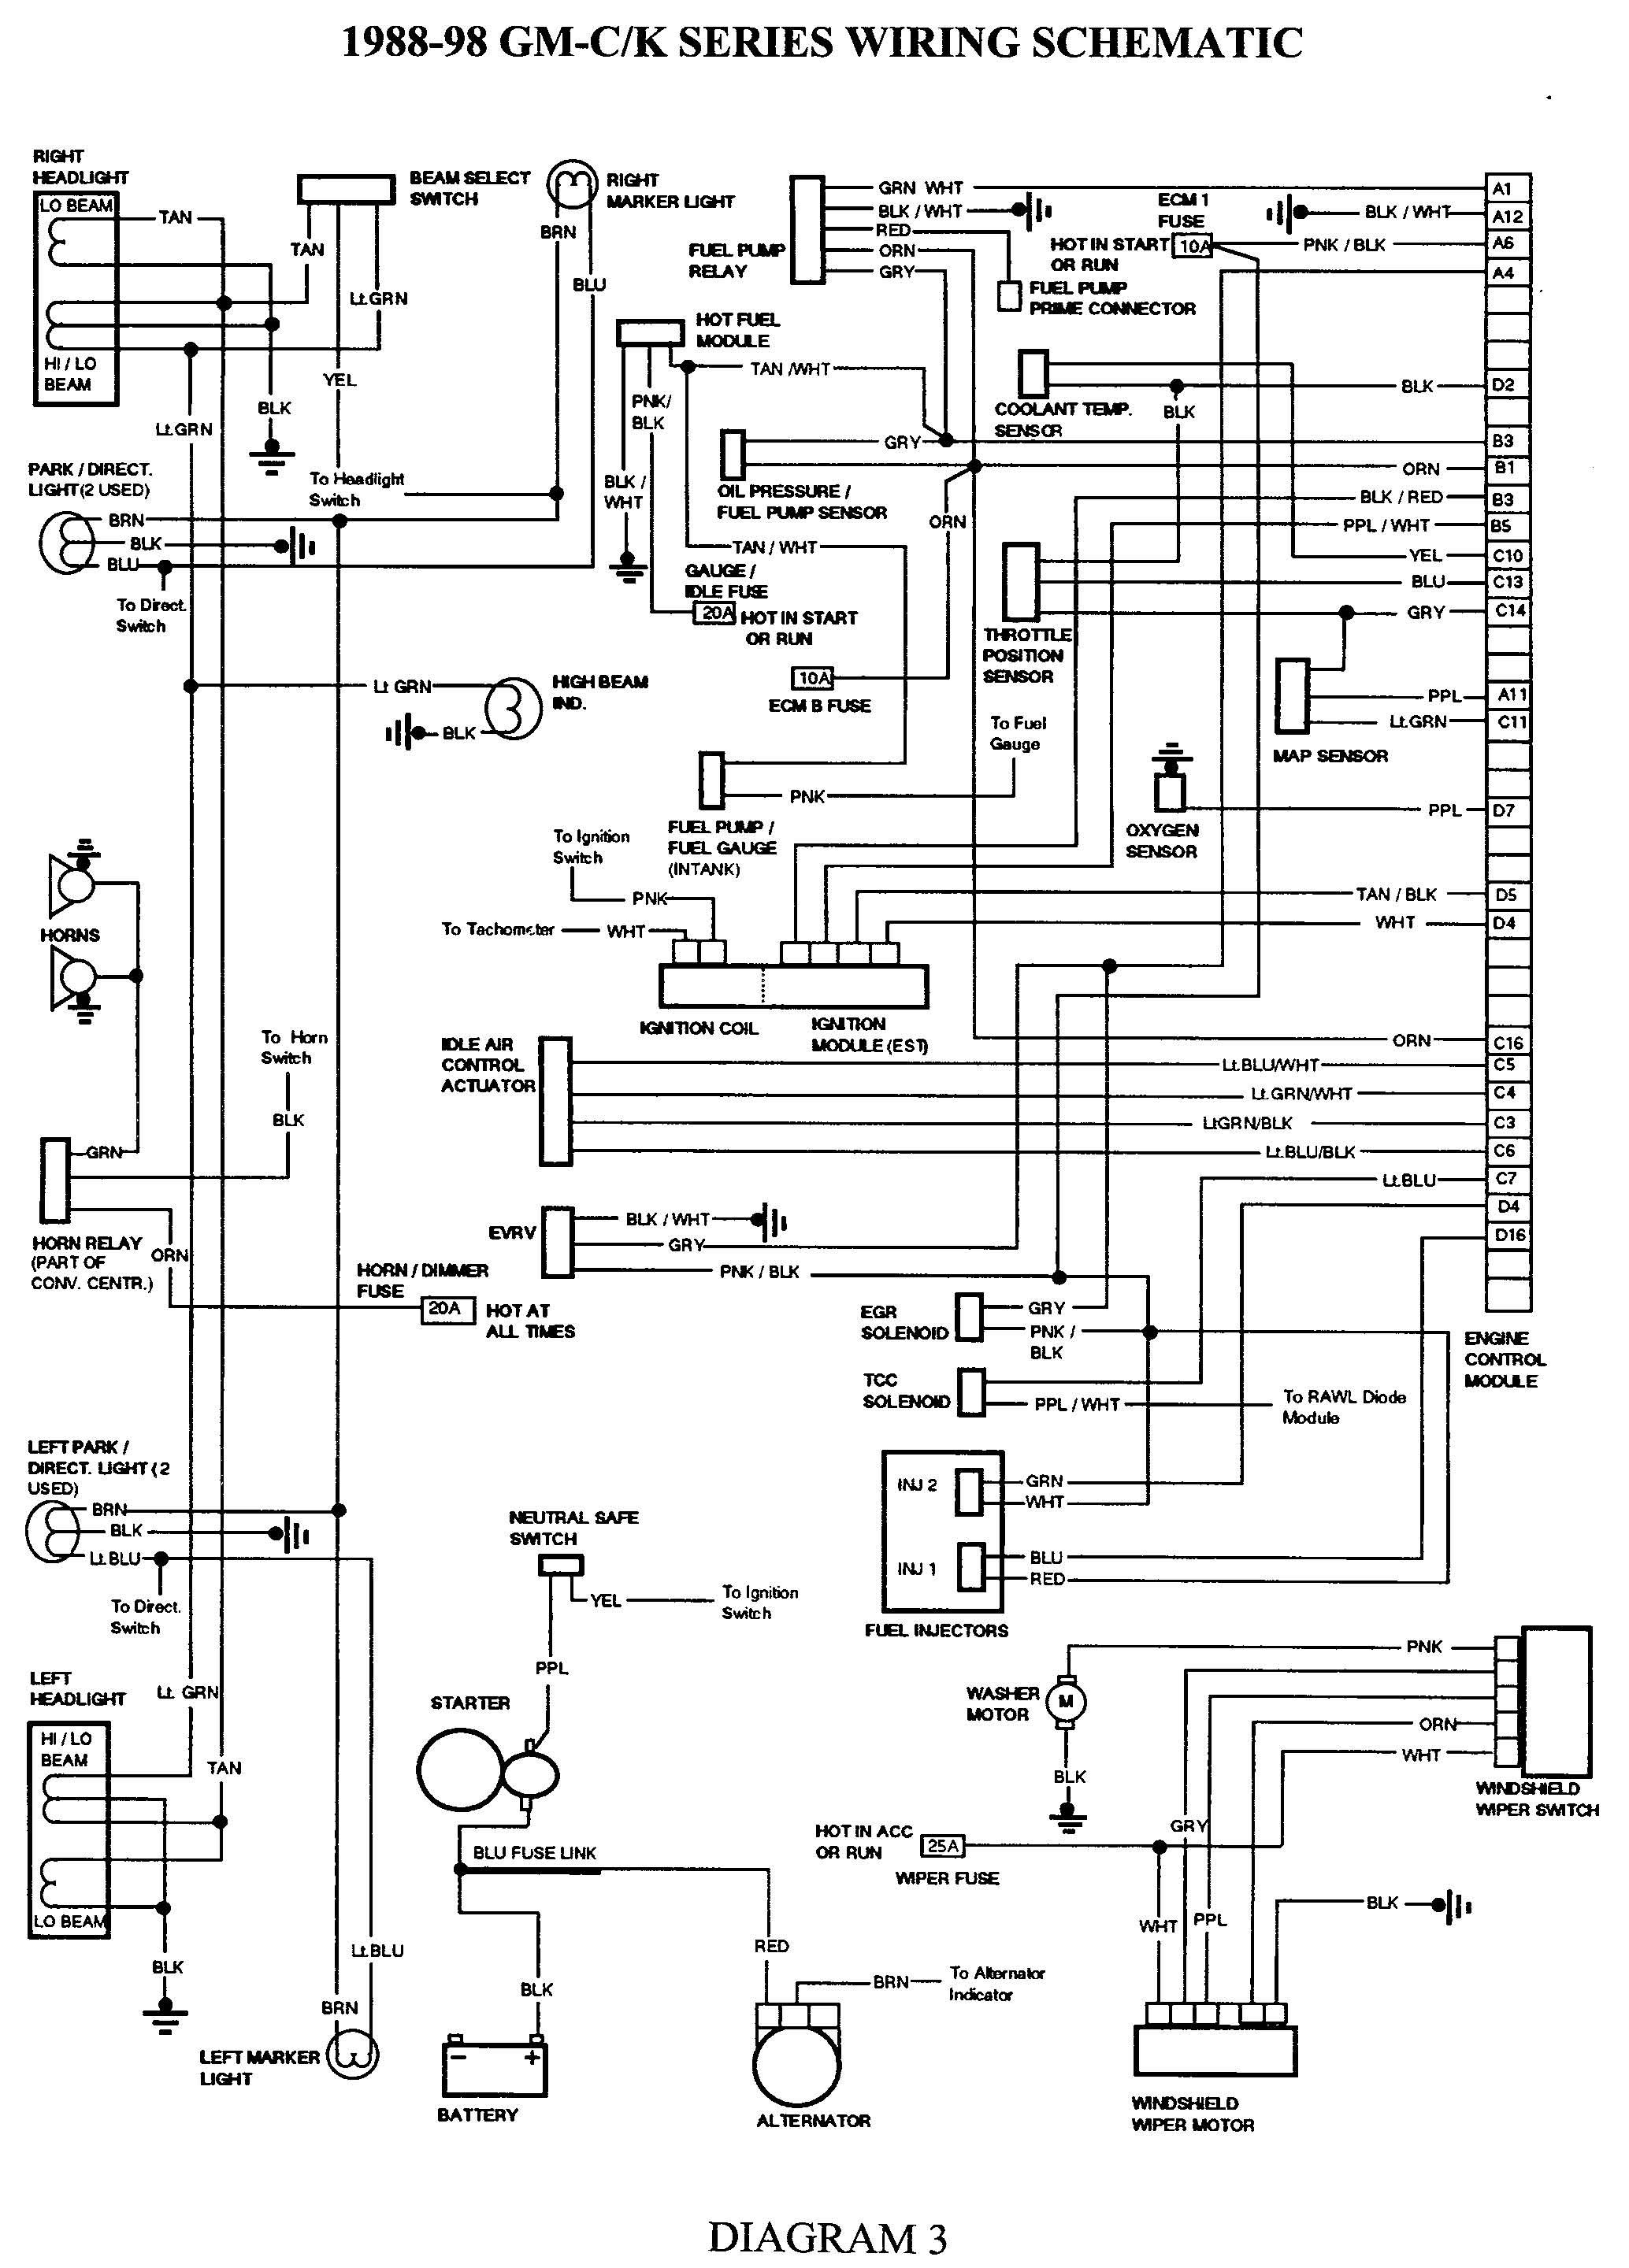 fog machine wiring diagram wiring diagramwiring diagram for fog machine best wiring libraryfog machine wiring diagram